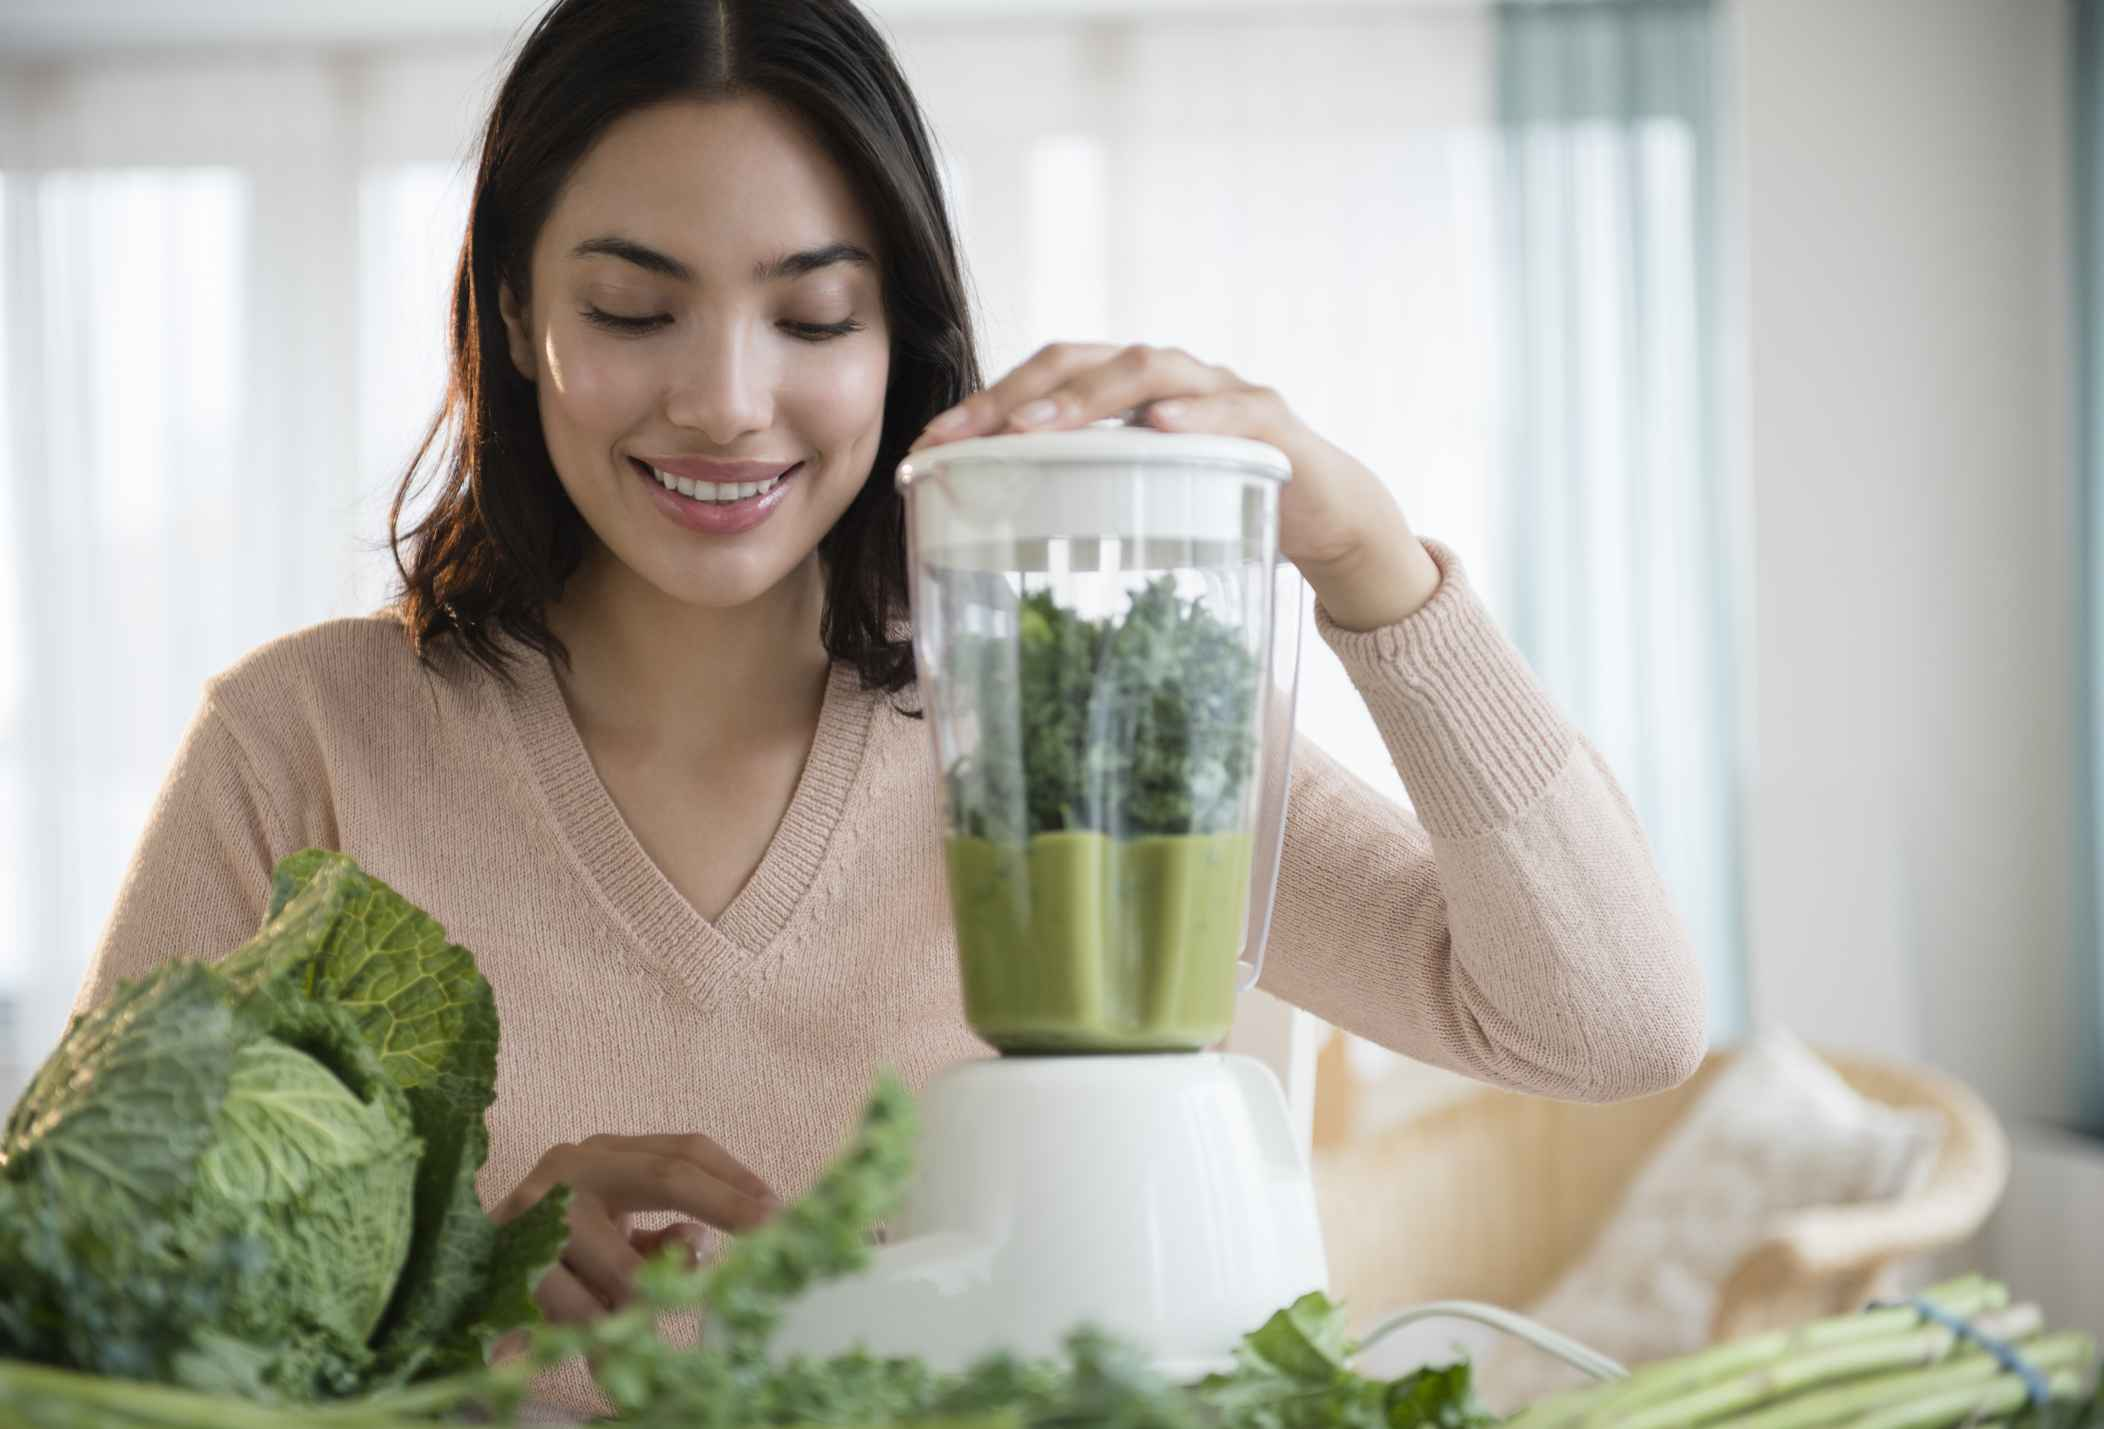 can liquid diet help you lose weight